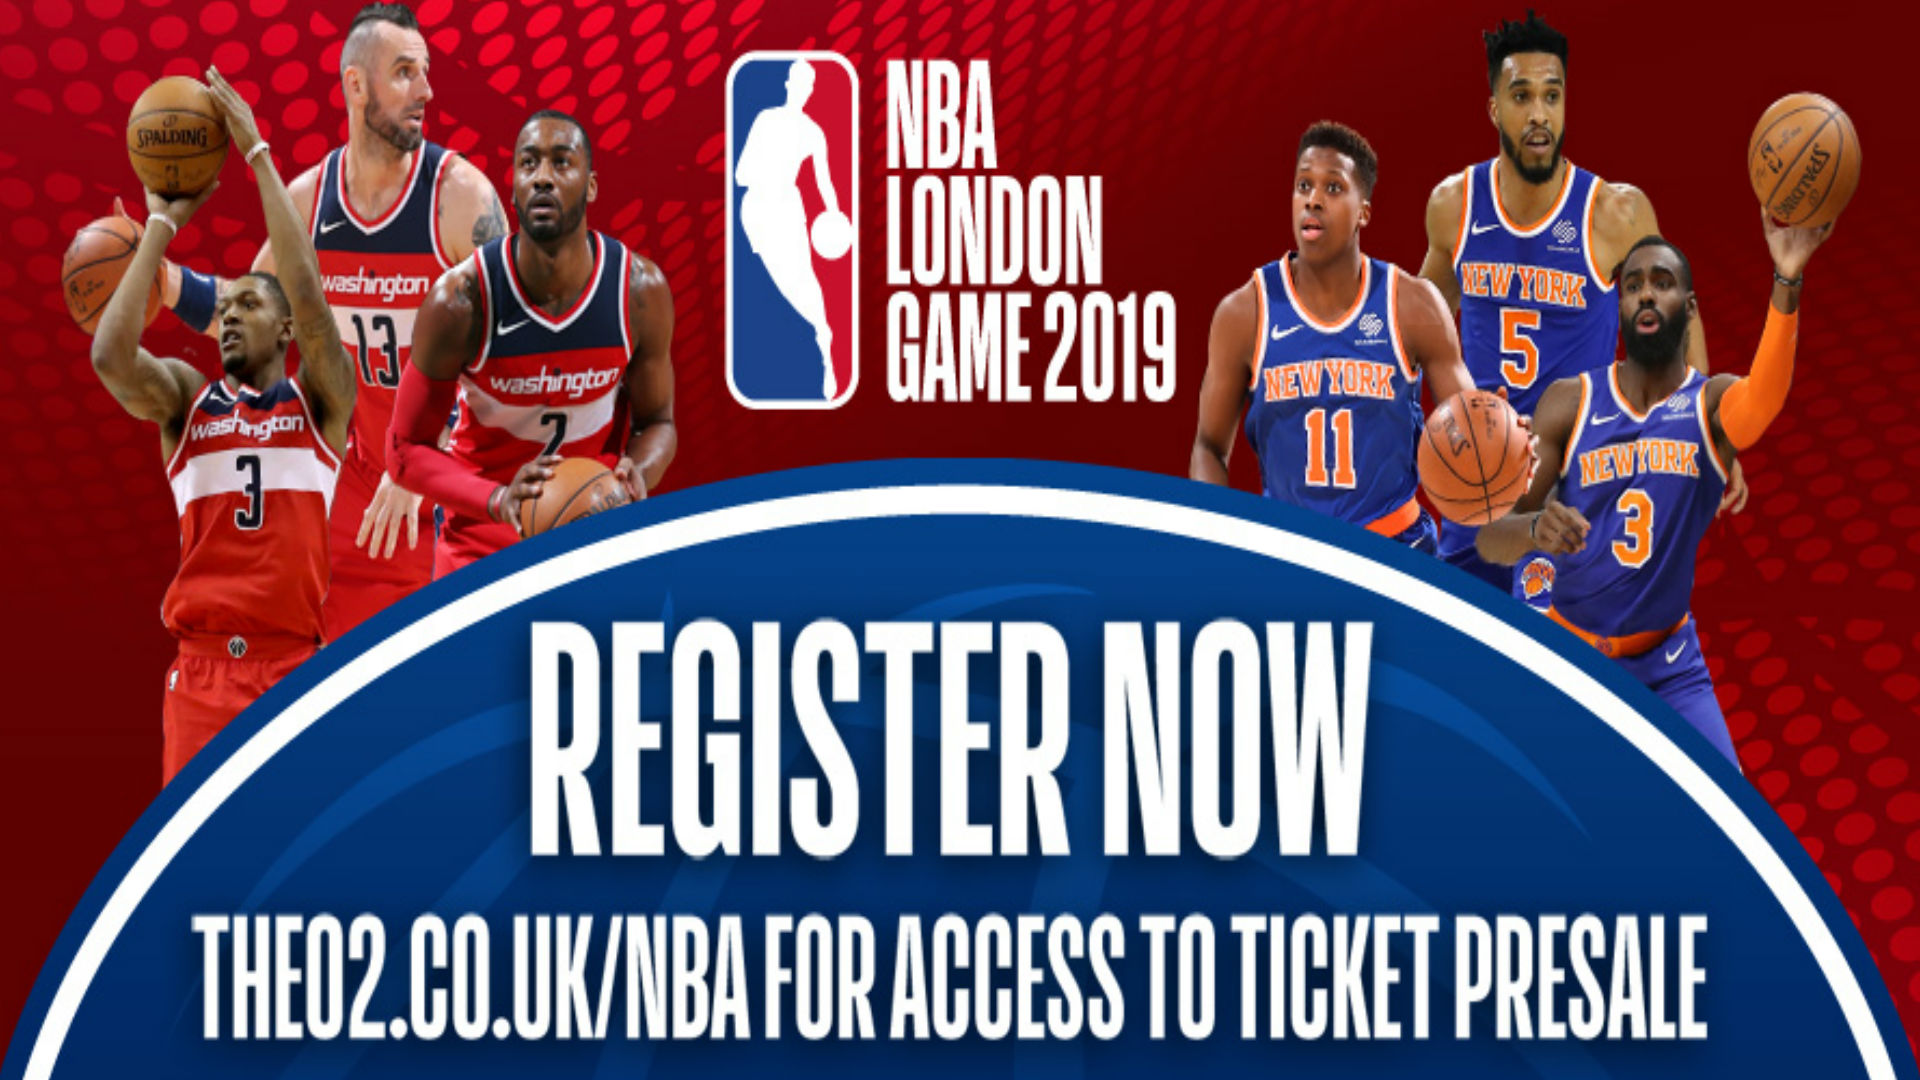 259f24d87209 NBA London Game 2019 at The O2 - Basketball  amp  Baseball ...